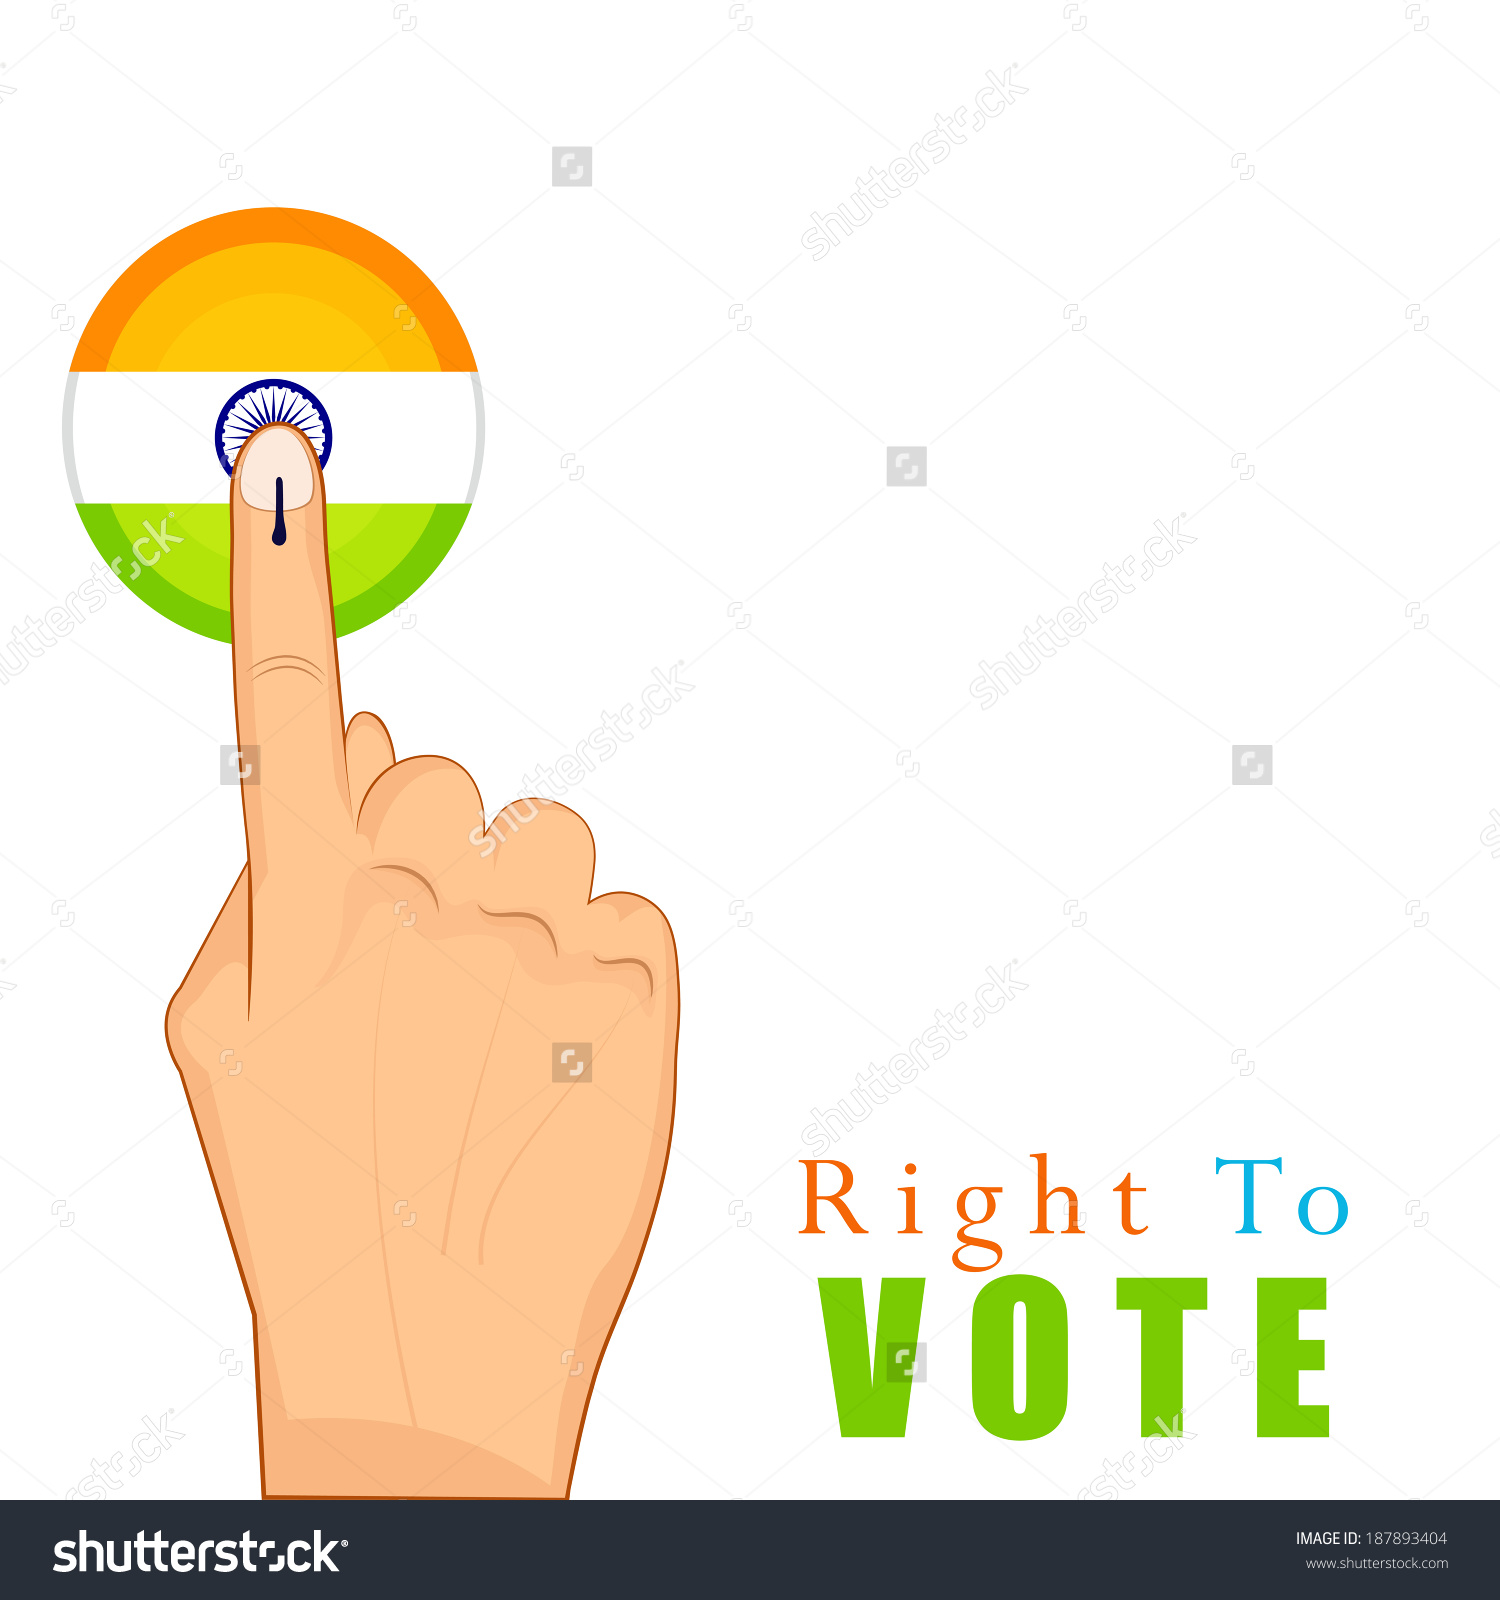 Hands Voting Sign India Tri Color Stock Vector 187893404.